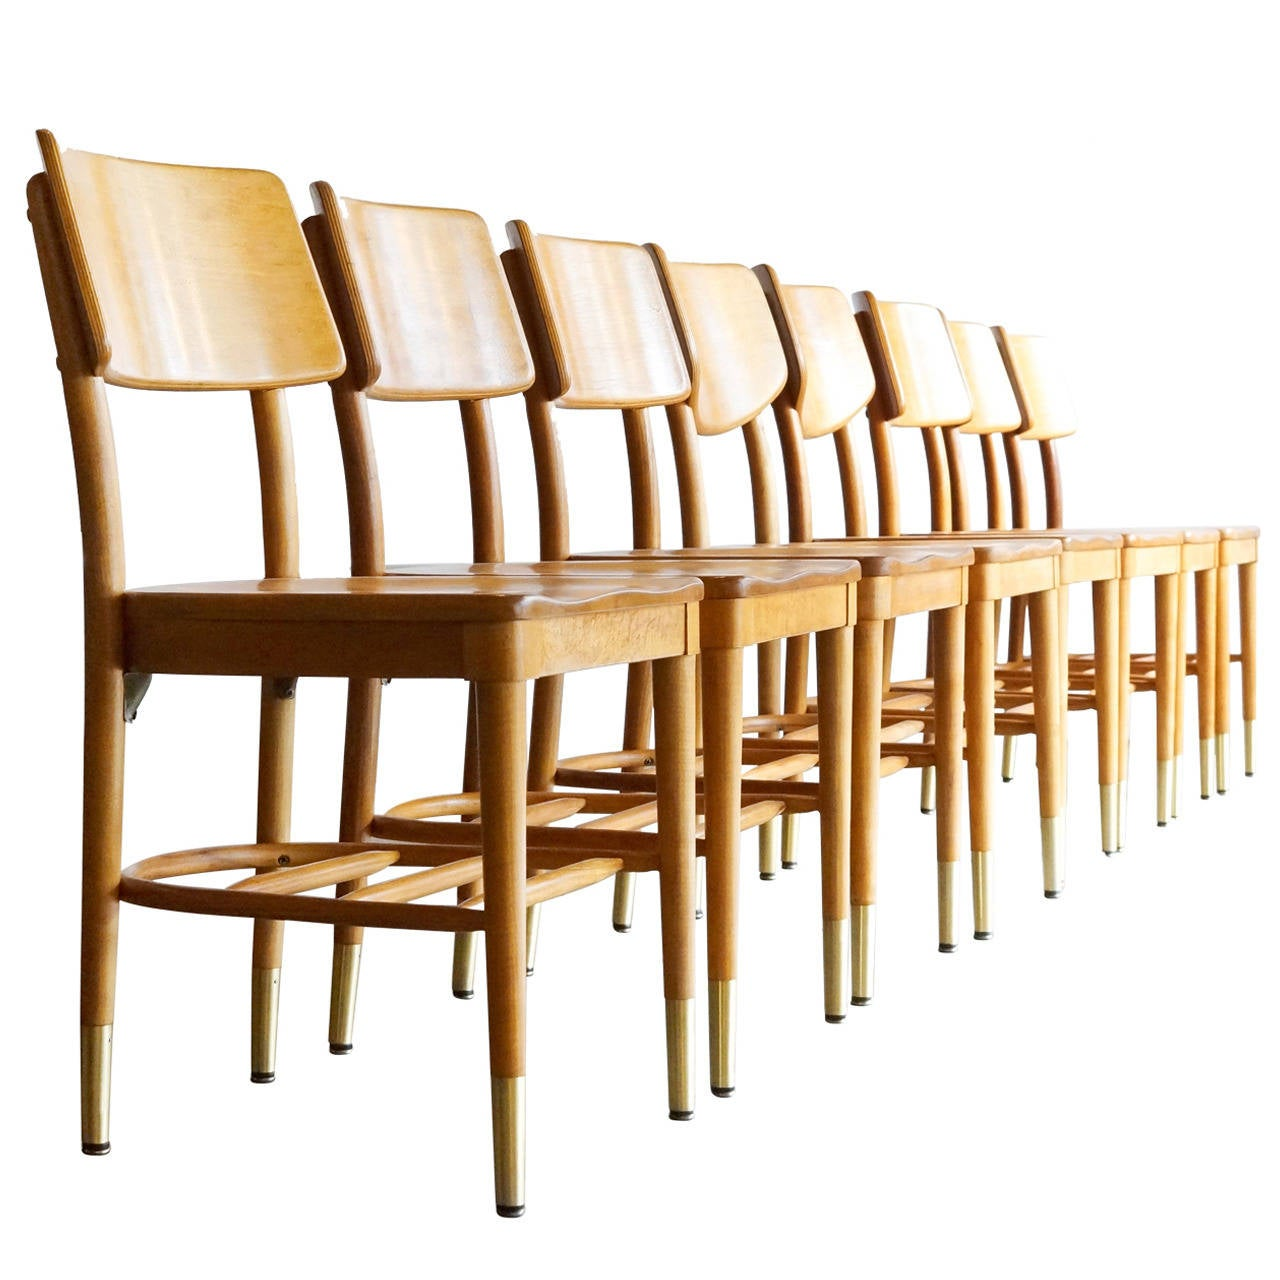 Set of 8 Bentwood School Chairs by Thonet, 1950s